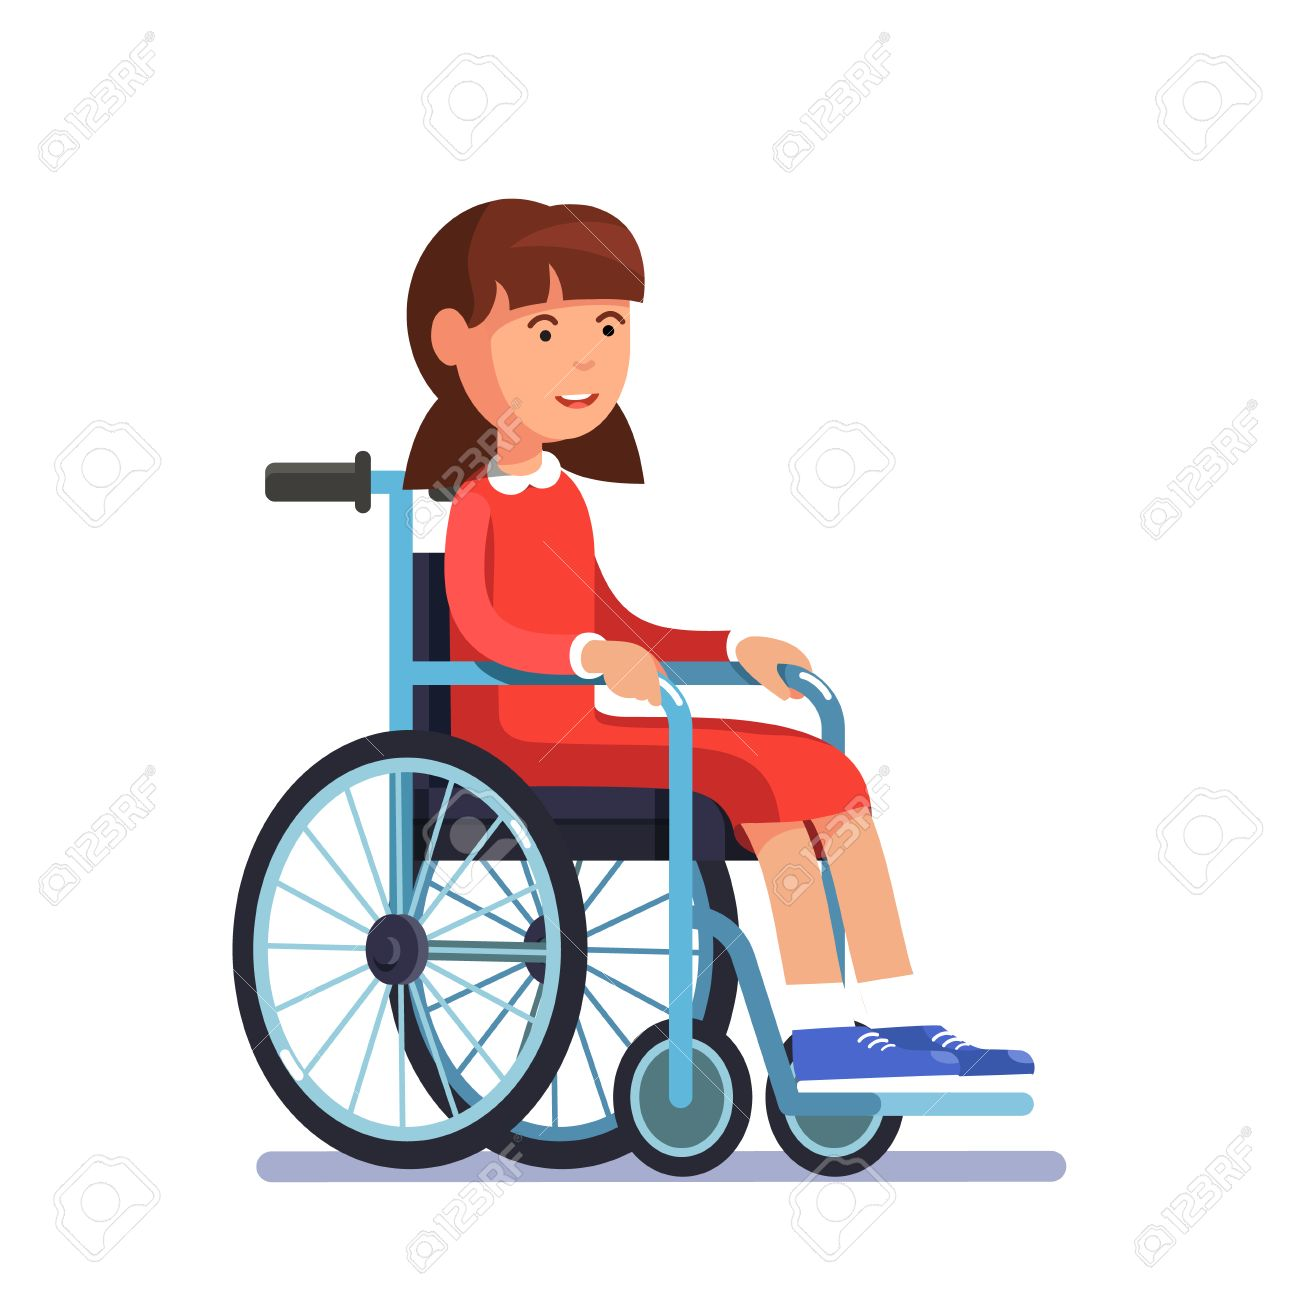 Image result for crippled child in a wheel chair